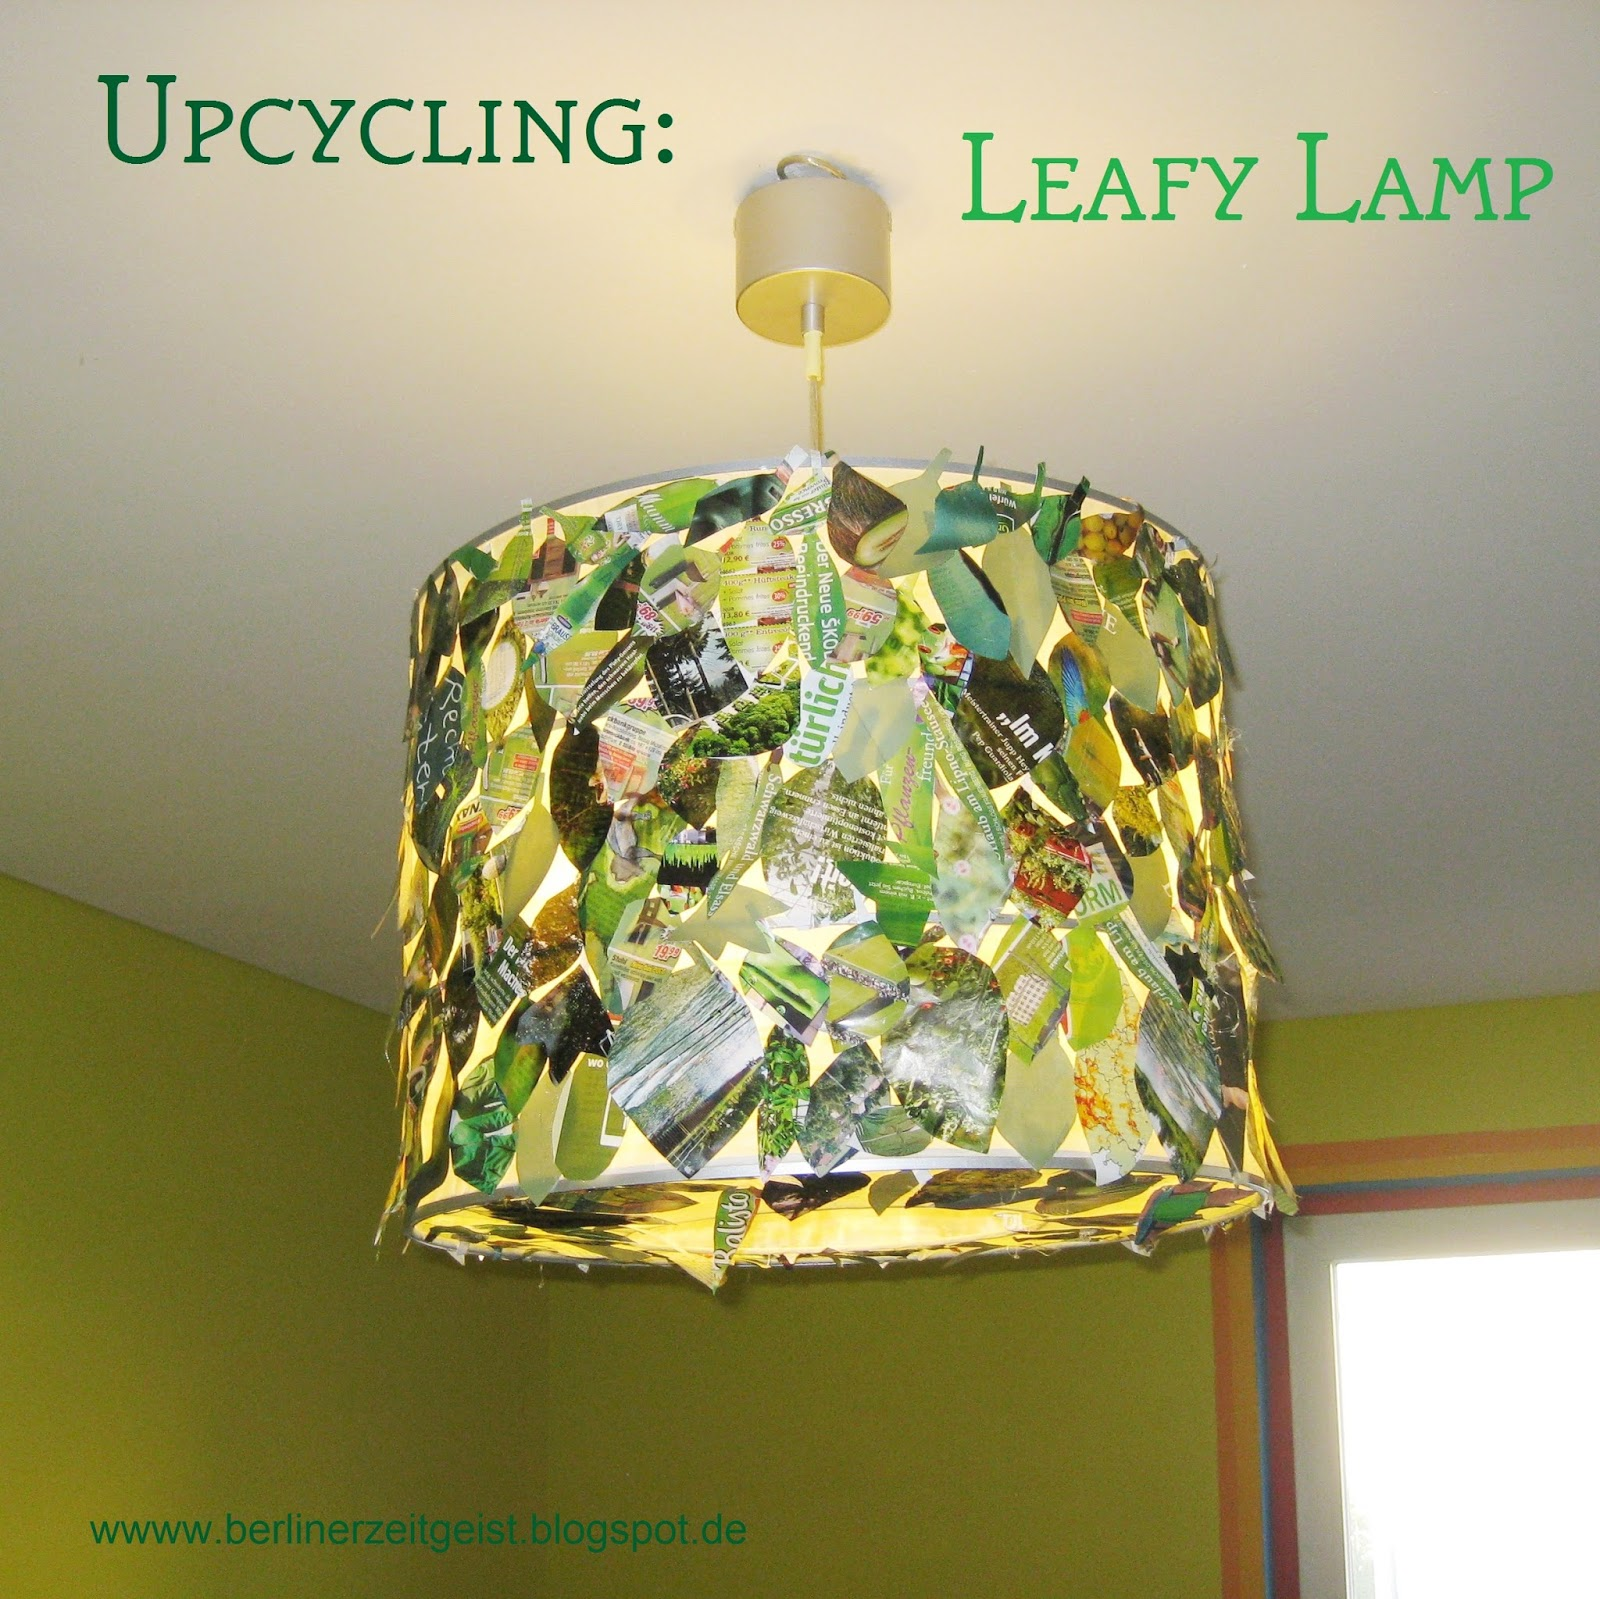 Berliner zeitgeist: upcycling: leafy lamp